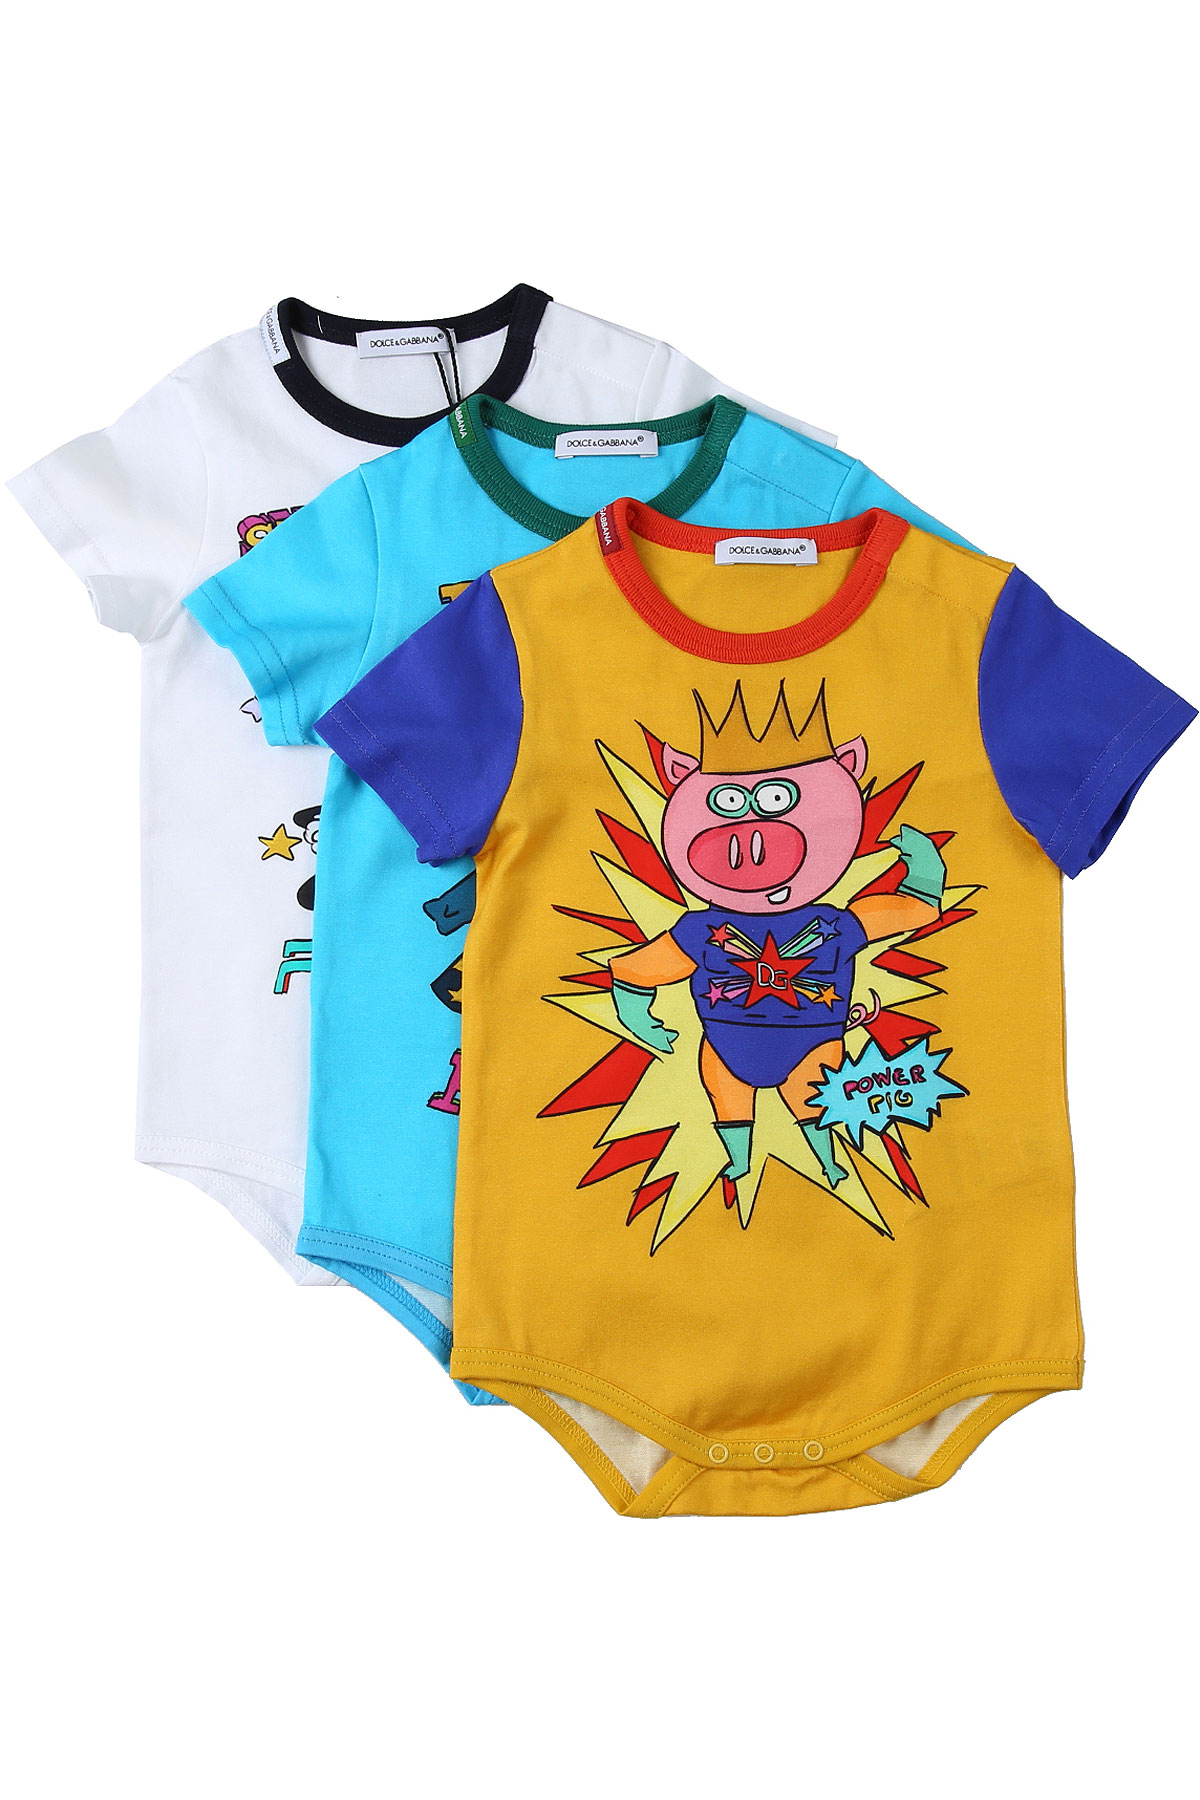 Dolce & Gabbana Baby Bodysuits & Onesies for Boys On Sale in Outlet, Multicolor, Cotton, 2019, 12 M 18M 24M 3M 6M